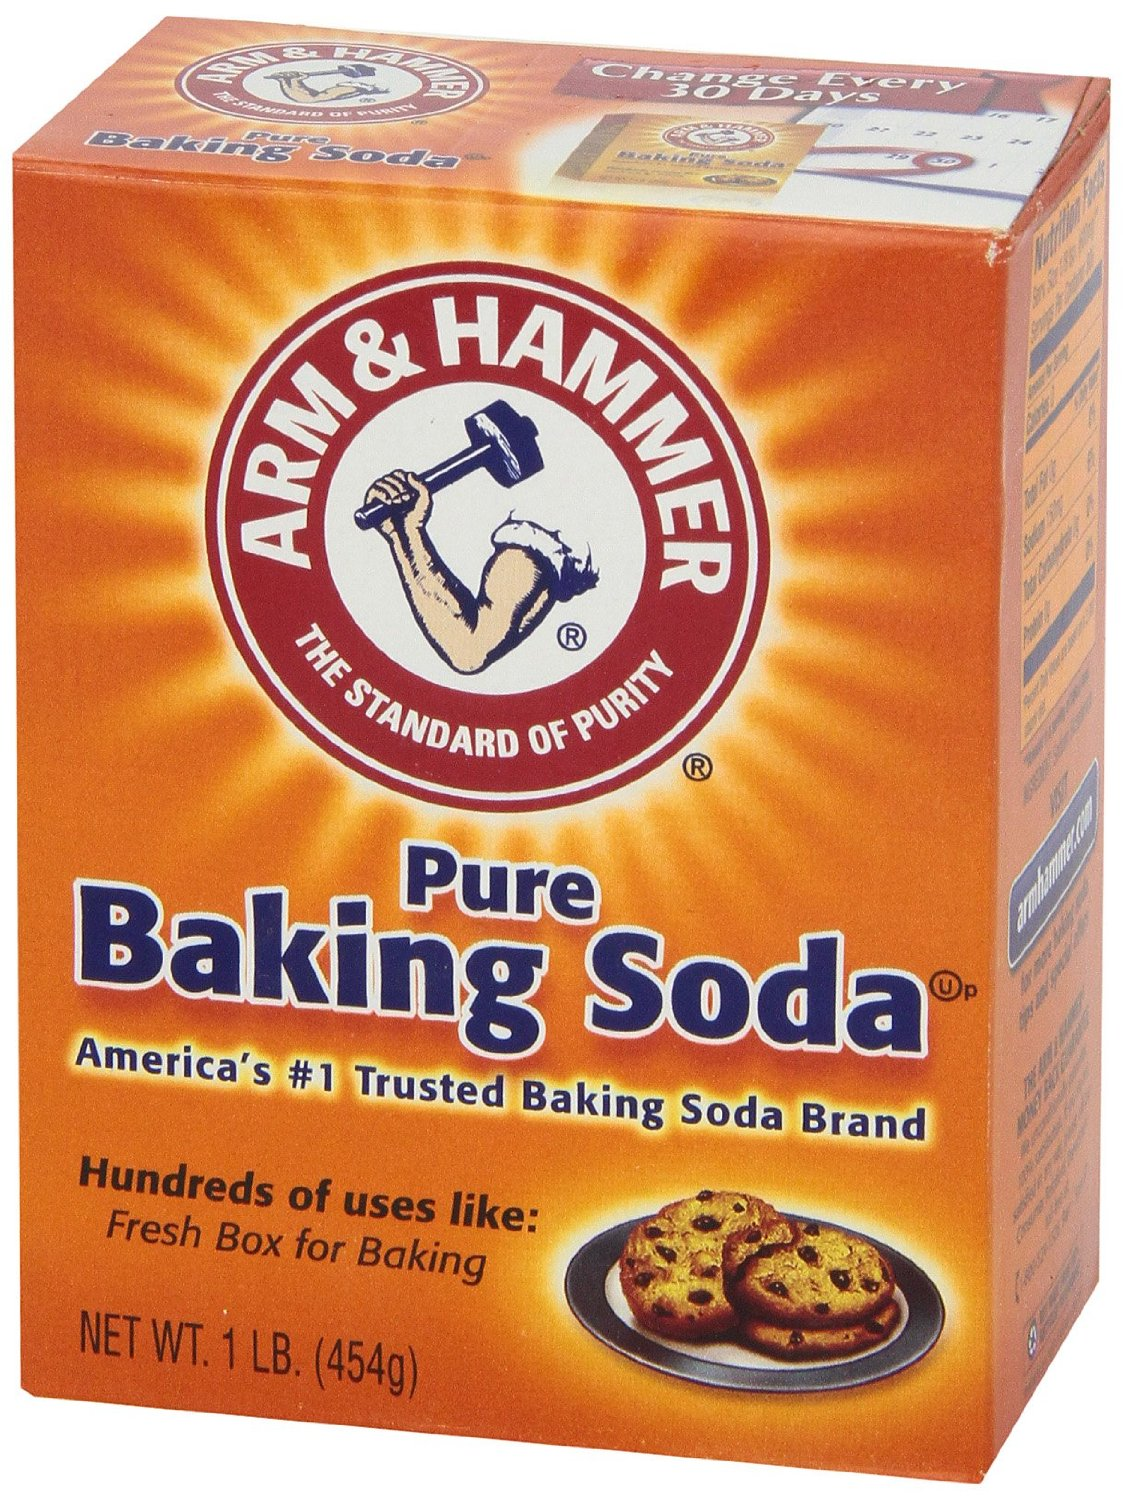 How To Get Rid Of Eczema - Baking Soda